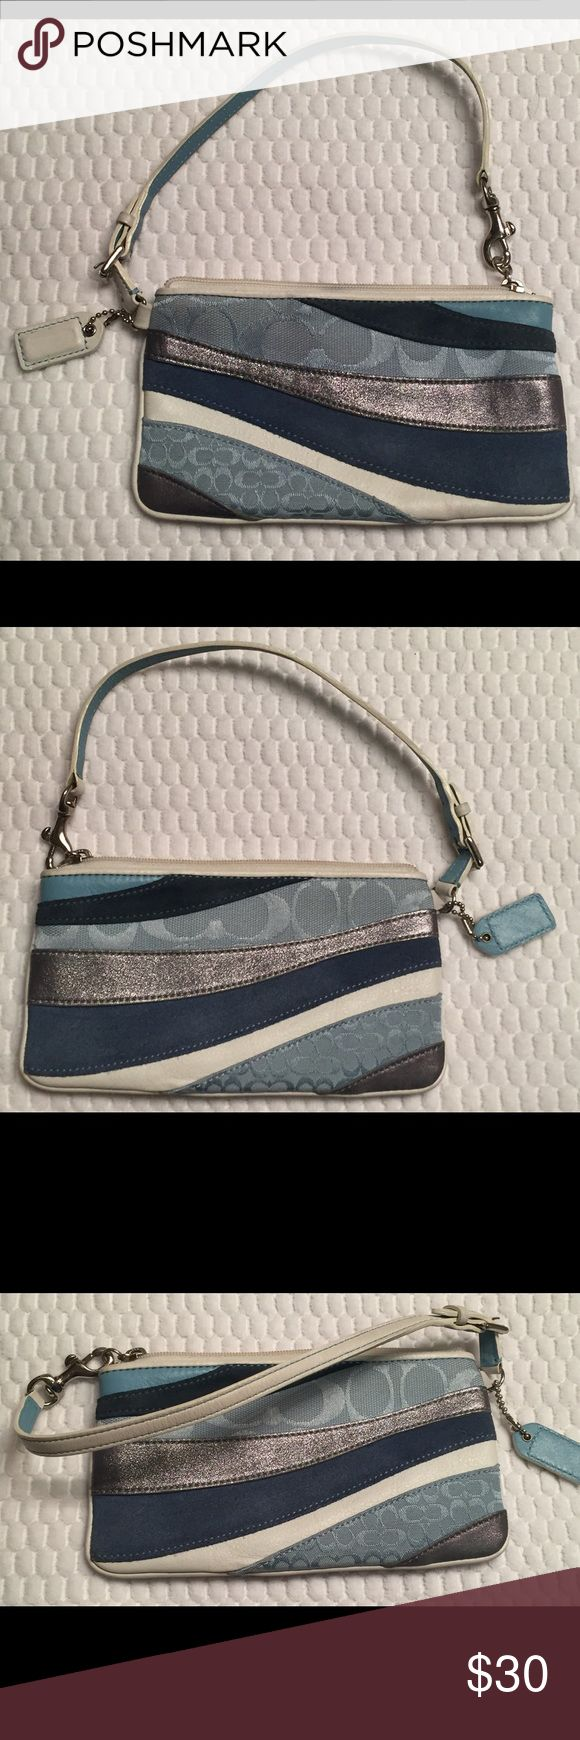 """Coach Blue Patchwork Striped Wristlet Nice used Coach wristlet. Patchwork blue, white and metallic stripes with signature C's. Silver tone hardware, zipper closure, 6"""" attached strap with dog leash clasp.  Approx. size: 7"""" L x 4 1/4"""" H. Strap is lightly dirty but overall nice condition. Coach Bags Clutches & Wristlets"""